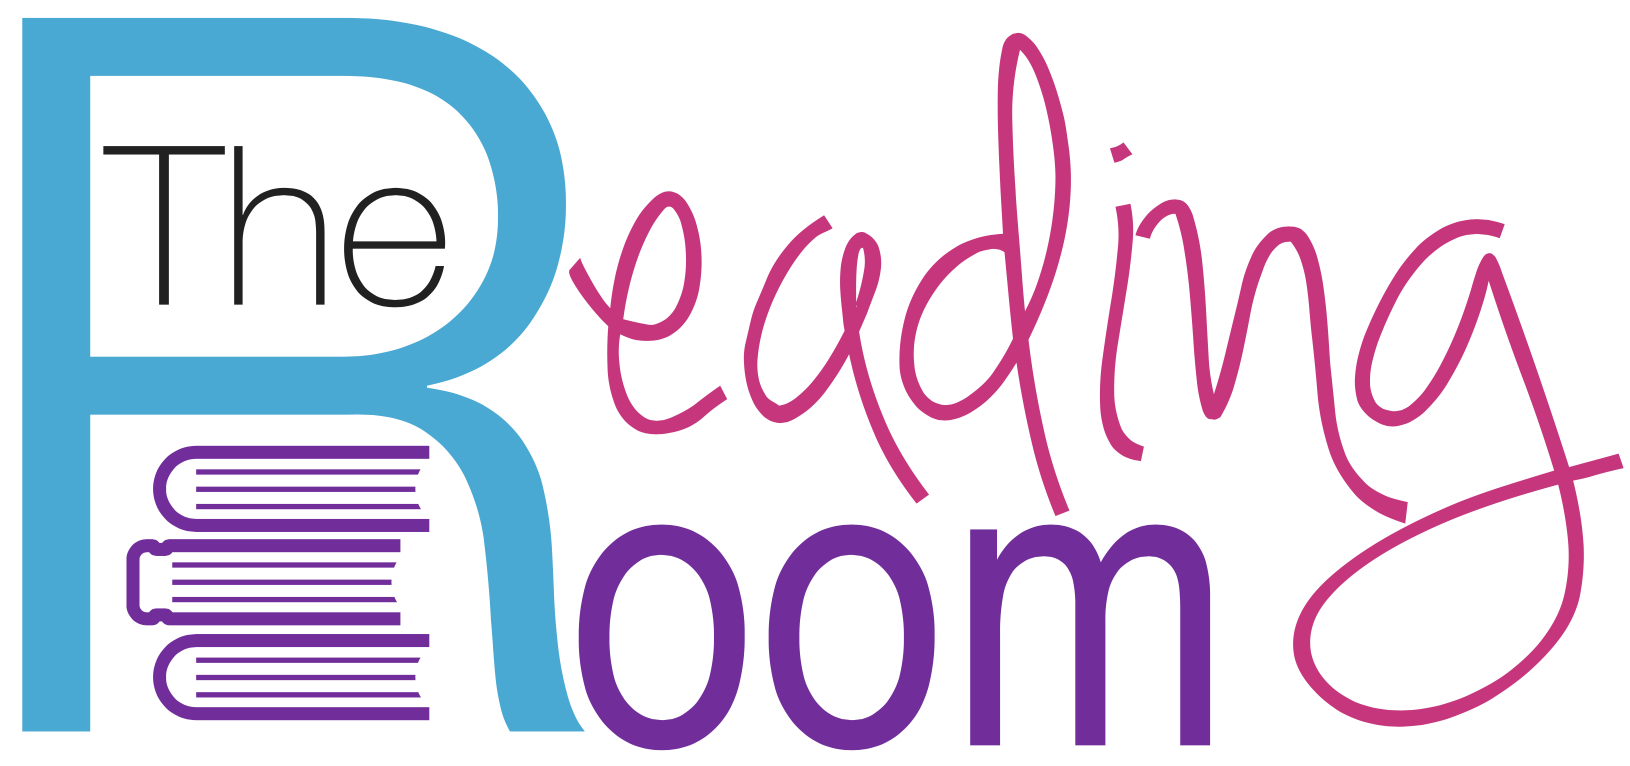 The Reading Room LLC was owned and operated by The Curious Edge Foundation Inc.